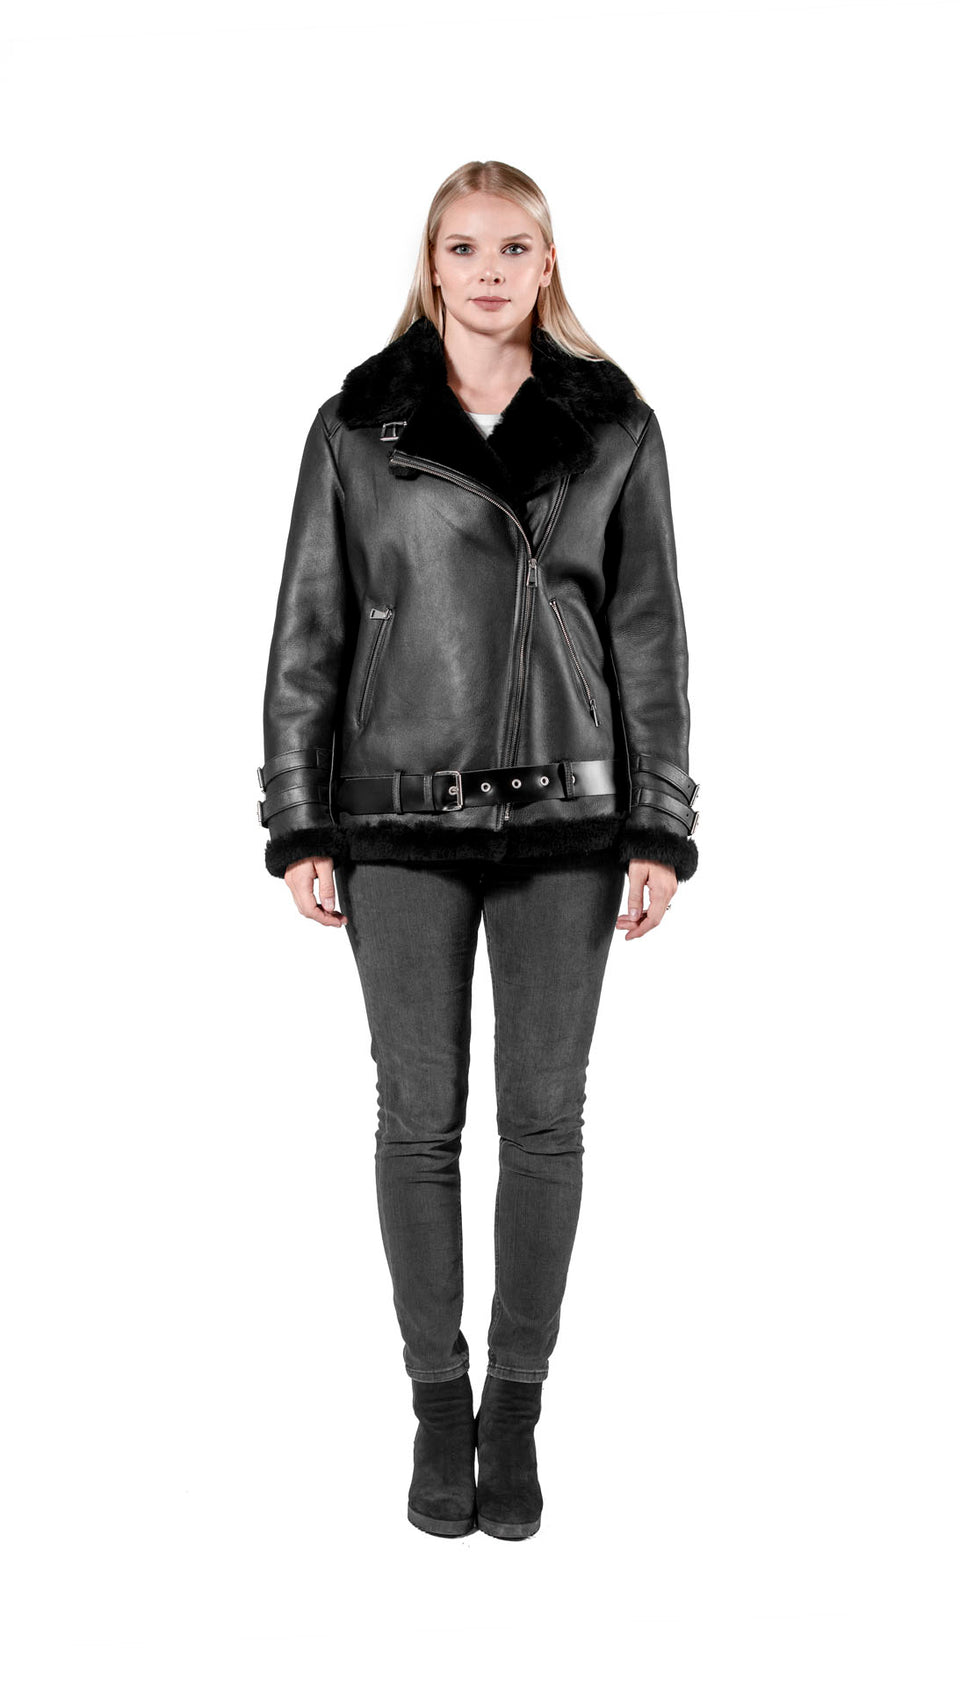 Myra Women Shearling Zipper Jacket Fashion 2020 - Black